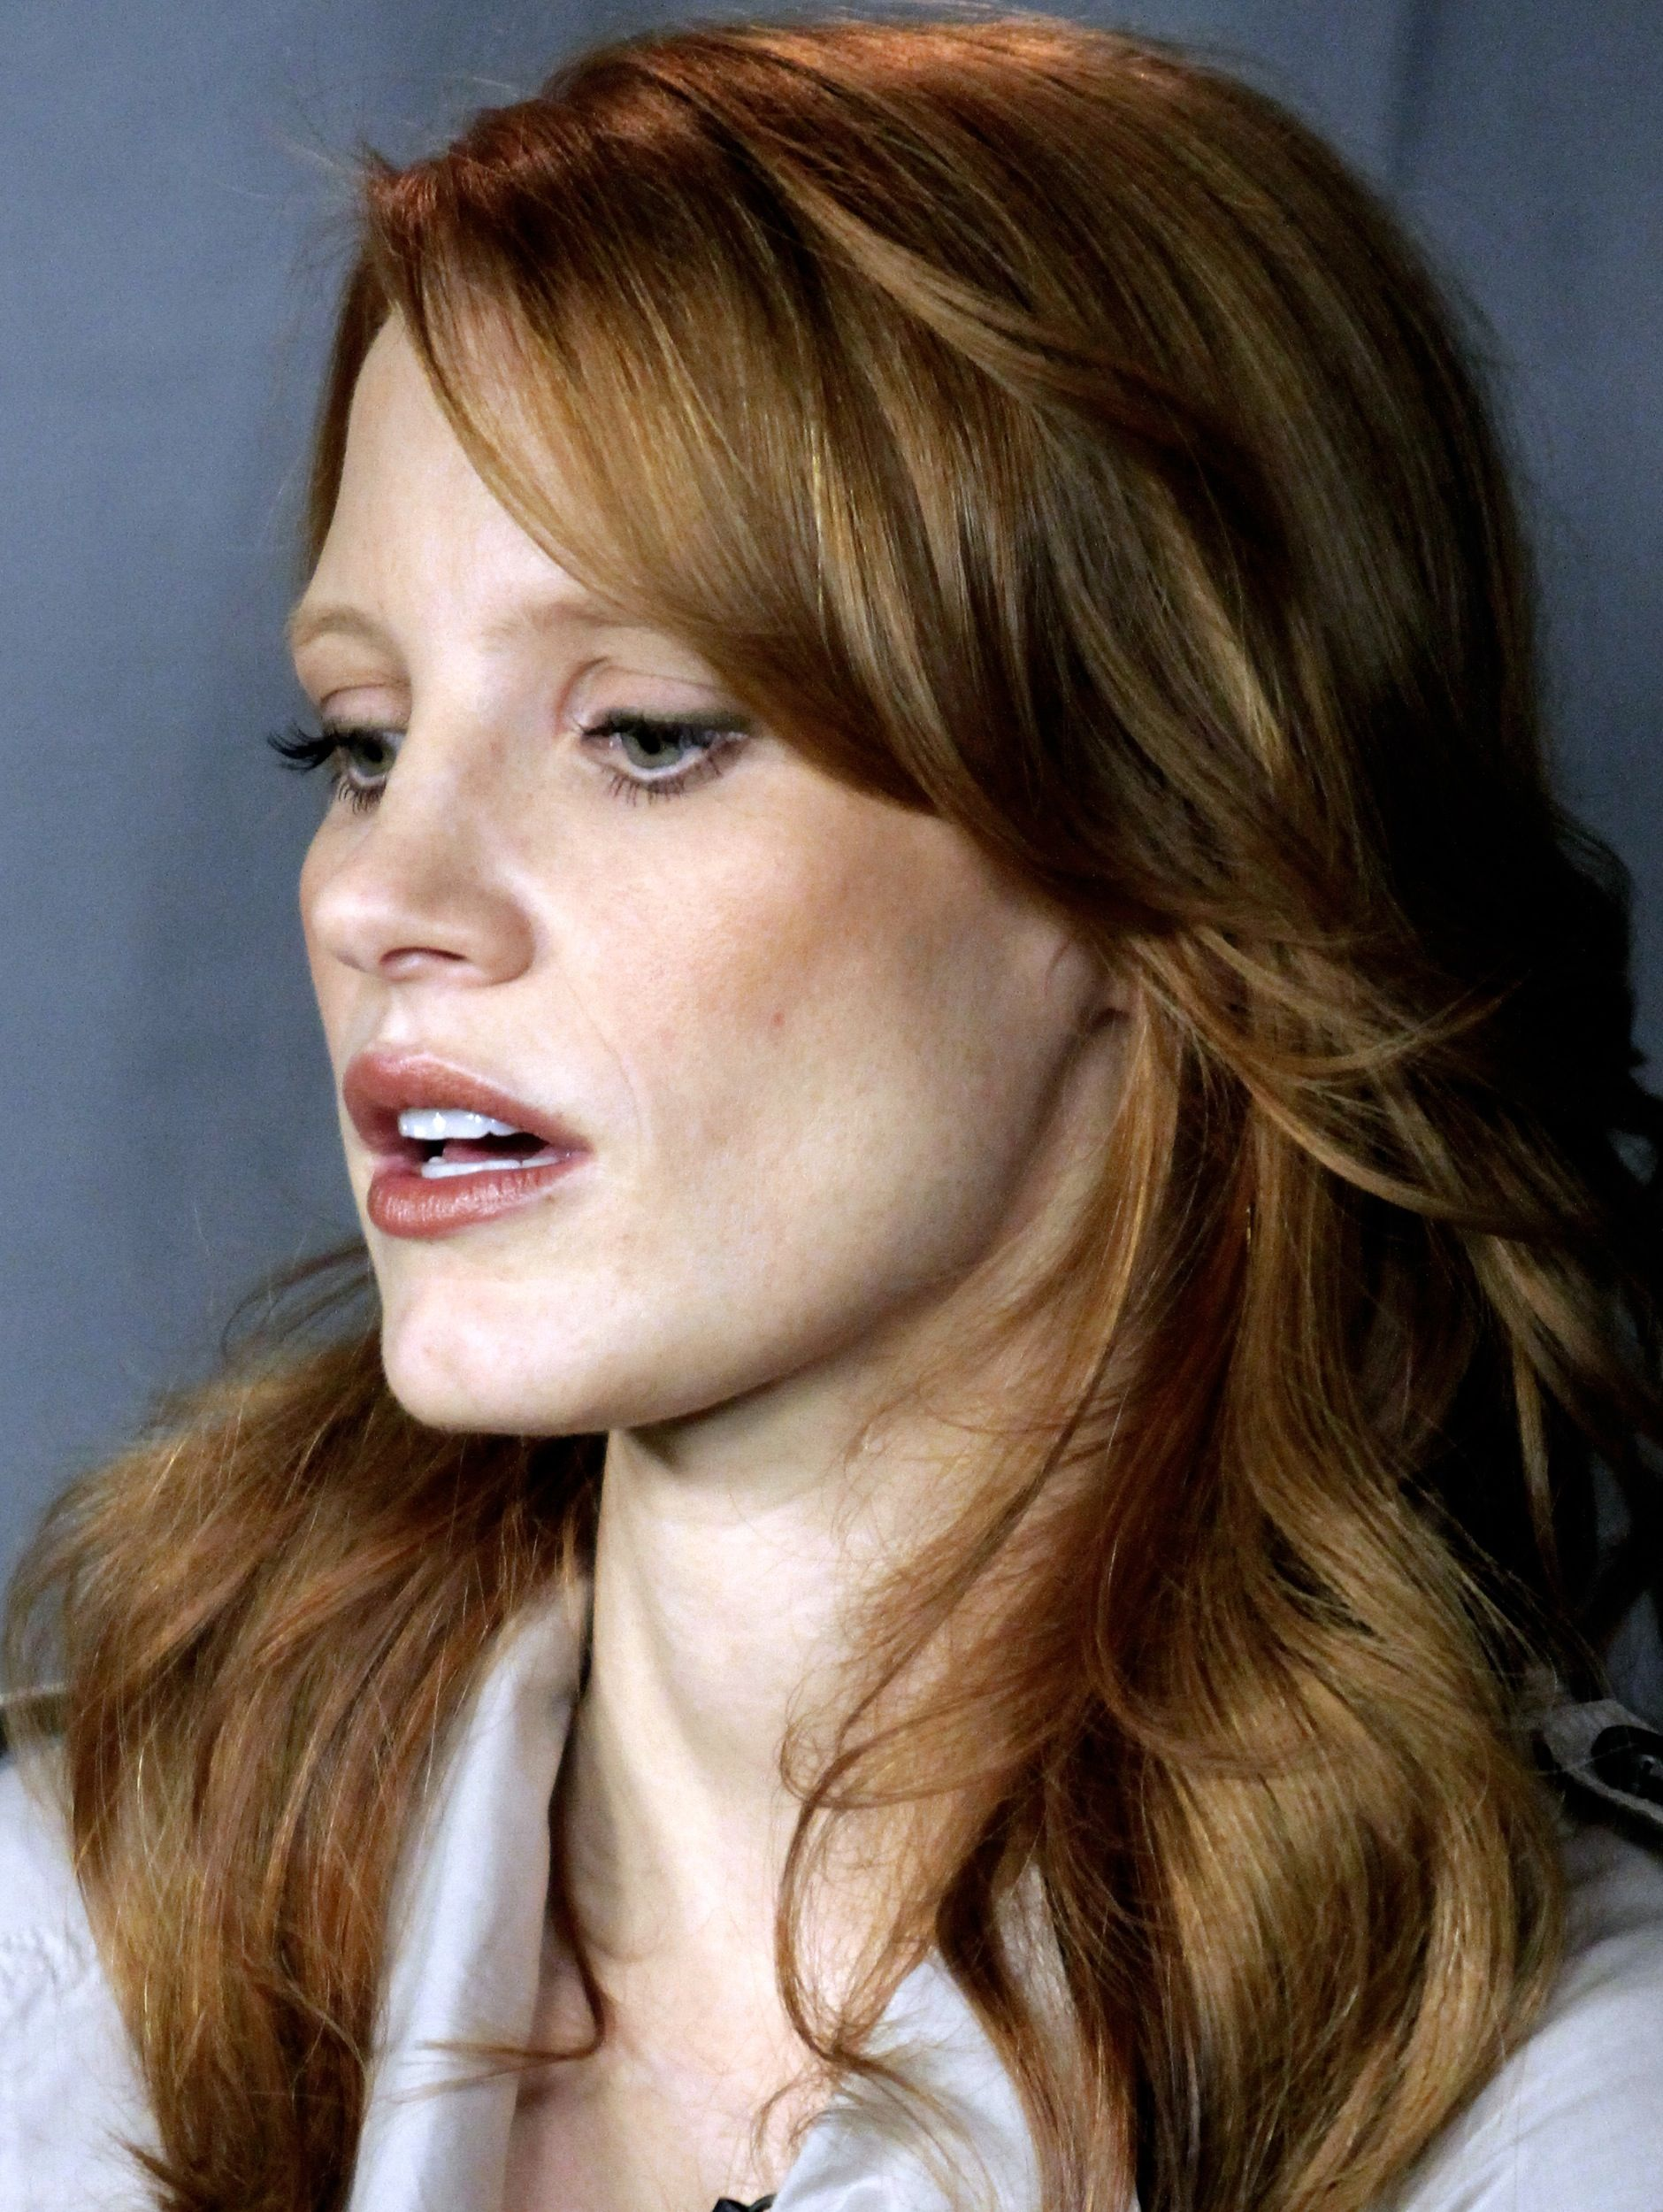 Jessica Chastain photo 519 of 2599 pics, wallpaper - photo ... Jessica Chastain Facebook